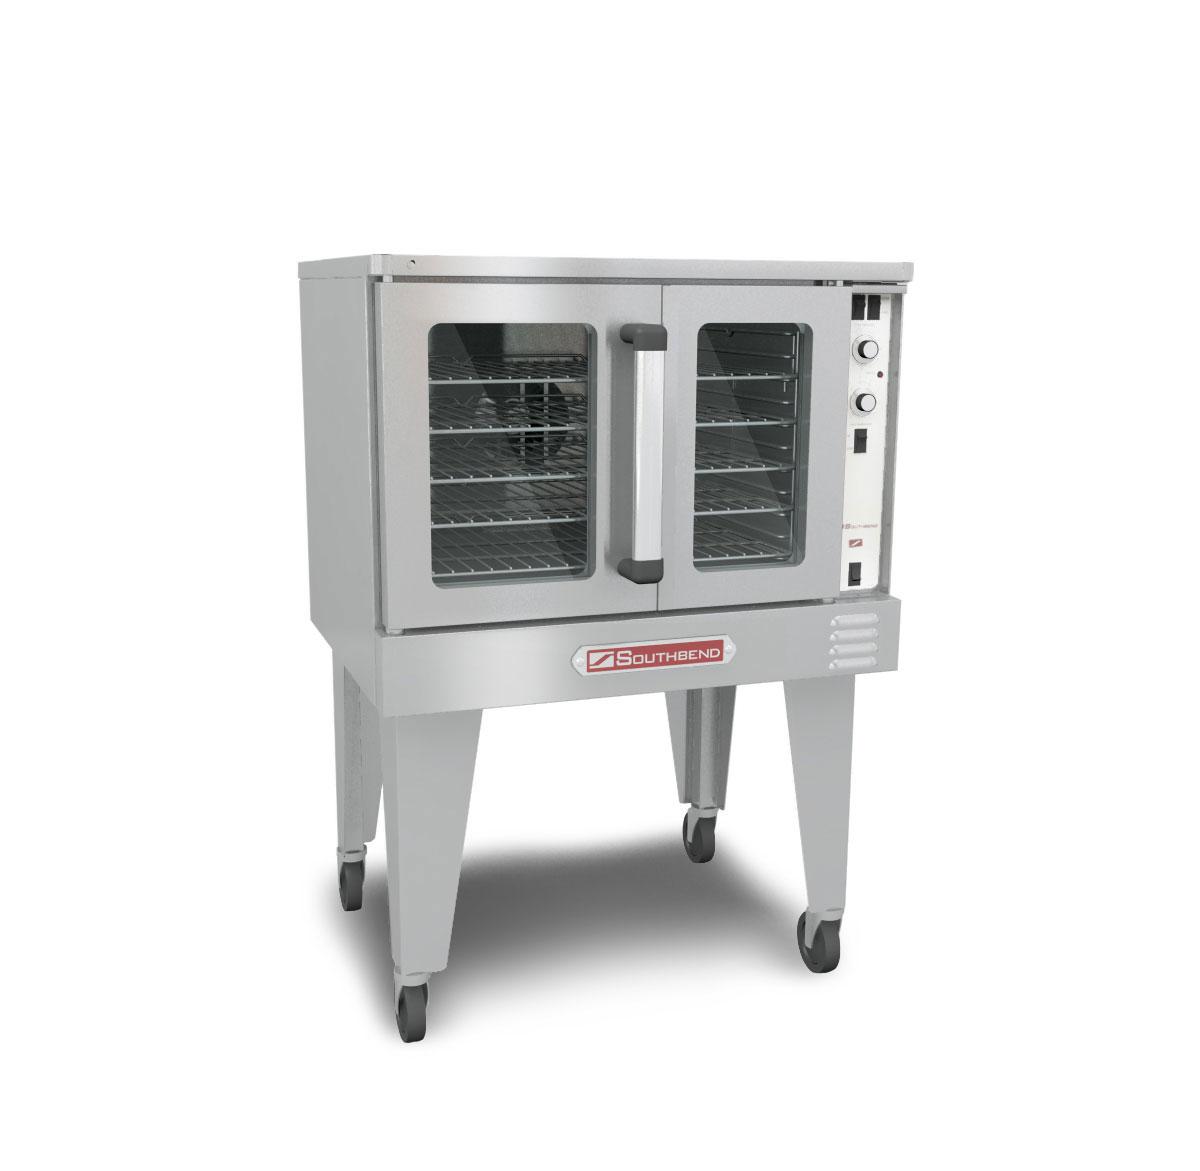 southbend bes17sc singledeck electric convection oven standard depth 75 kw - Convection Ovens